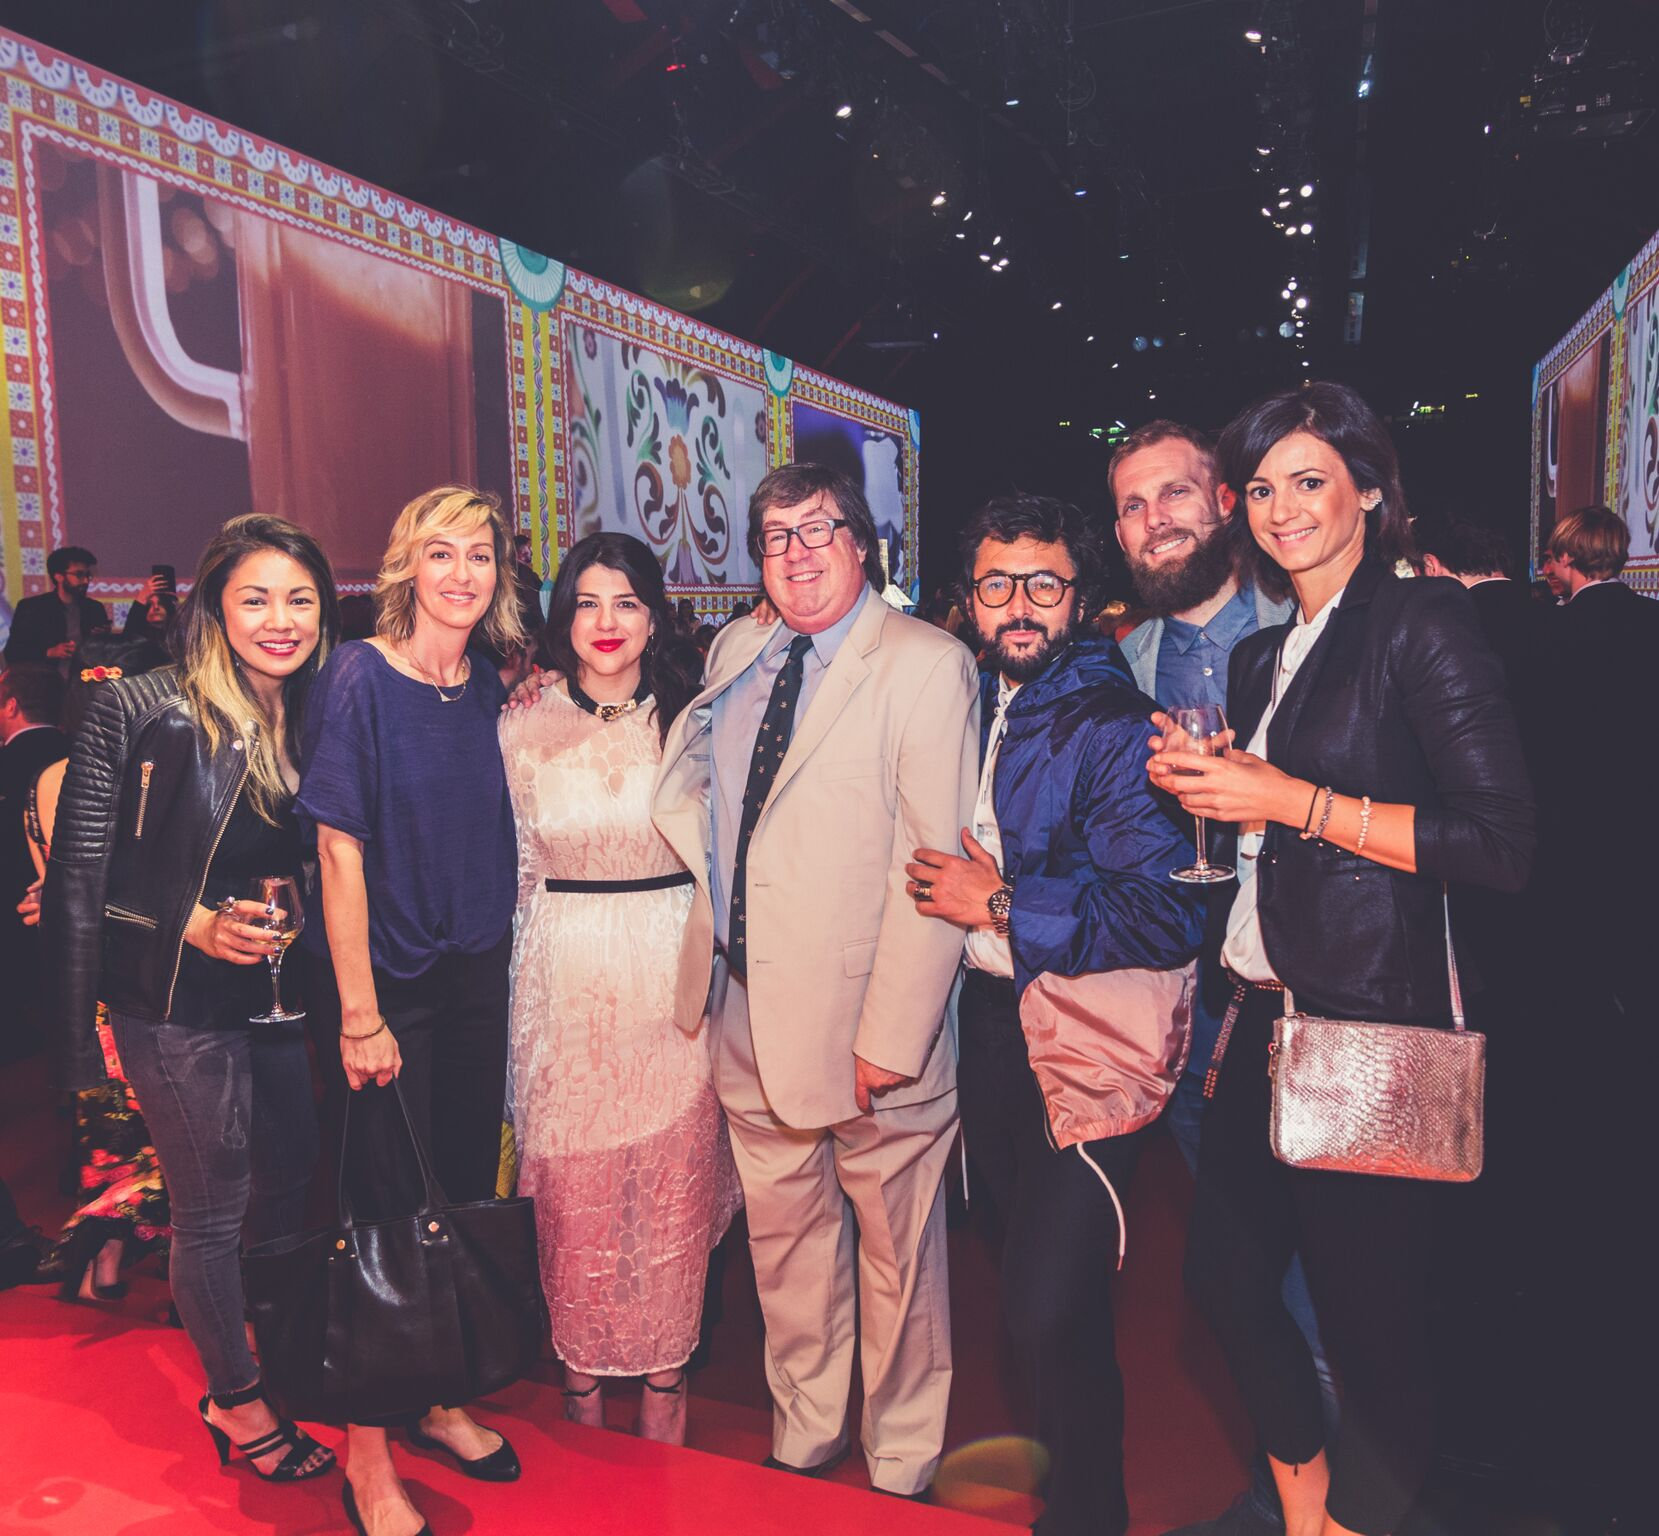 At the Dolce & Gabbana SMEG launch party. Edel, Ginna, Charlotte and Chris Welch, César Giraldo, Chris and friend